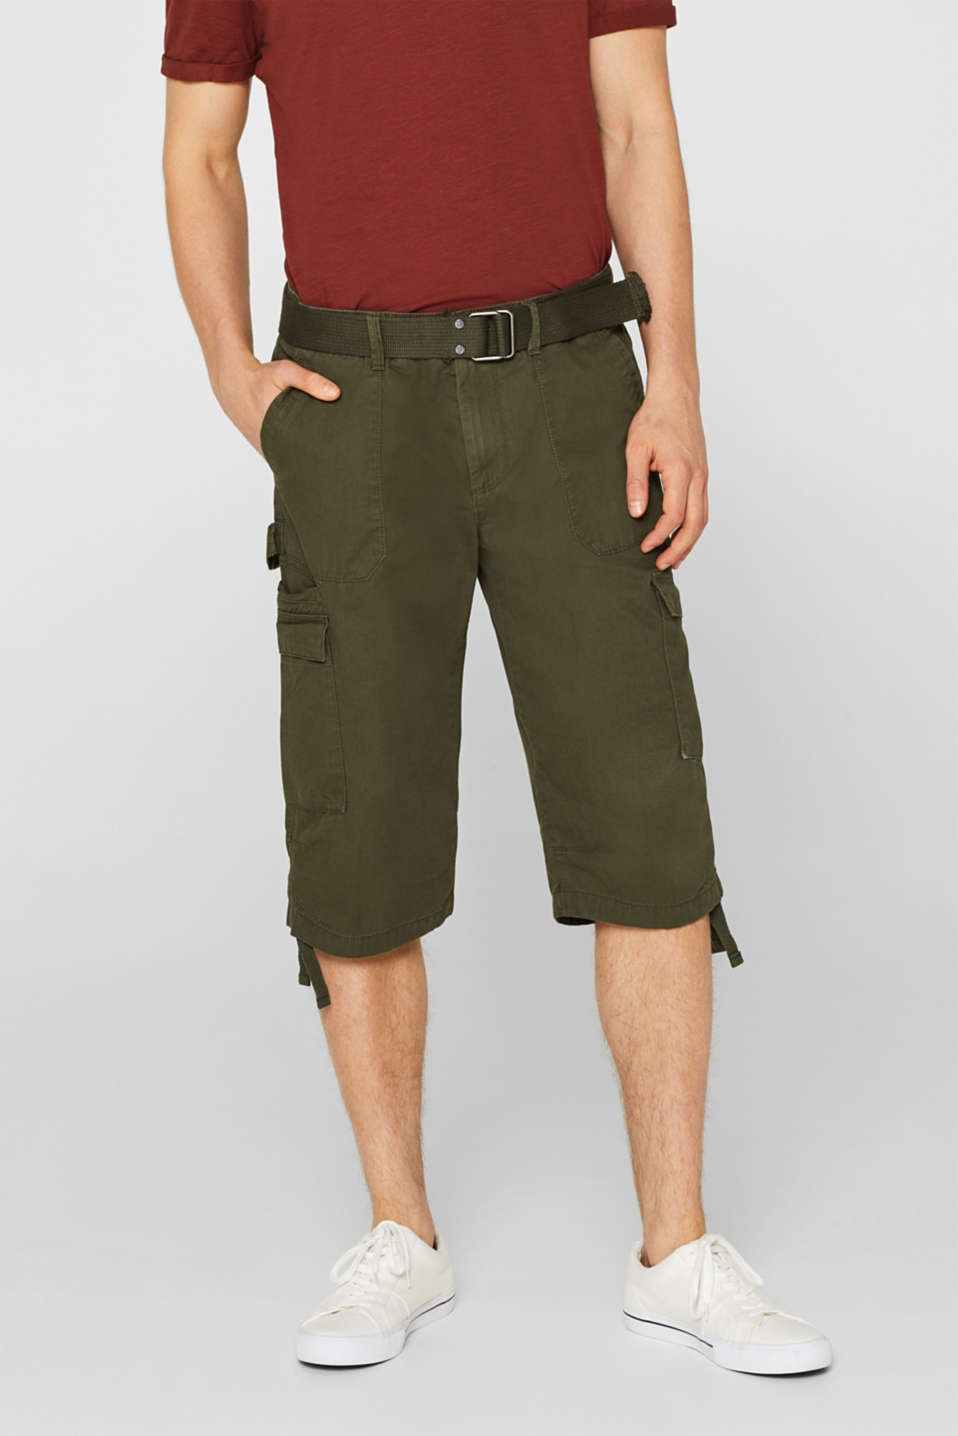 edc - Cargo shorts with a belt, 100% cotton